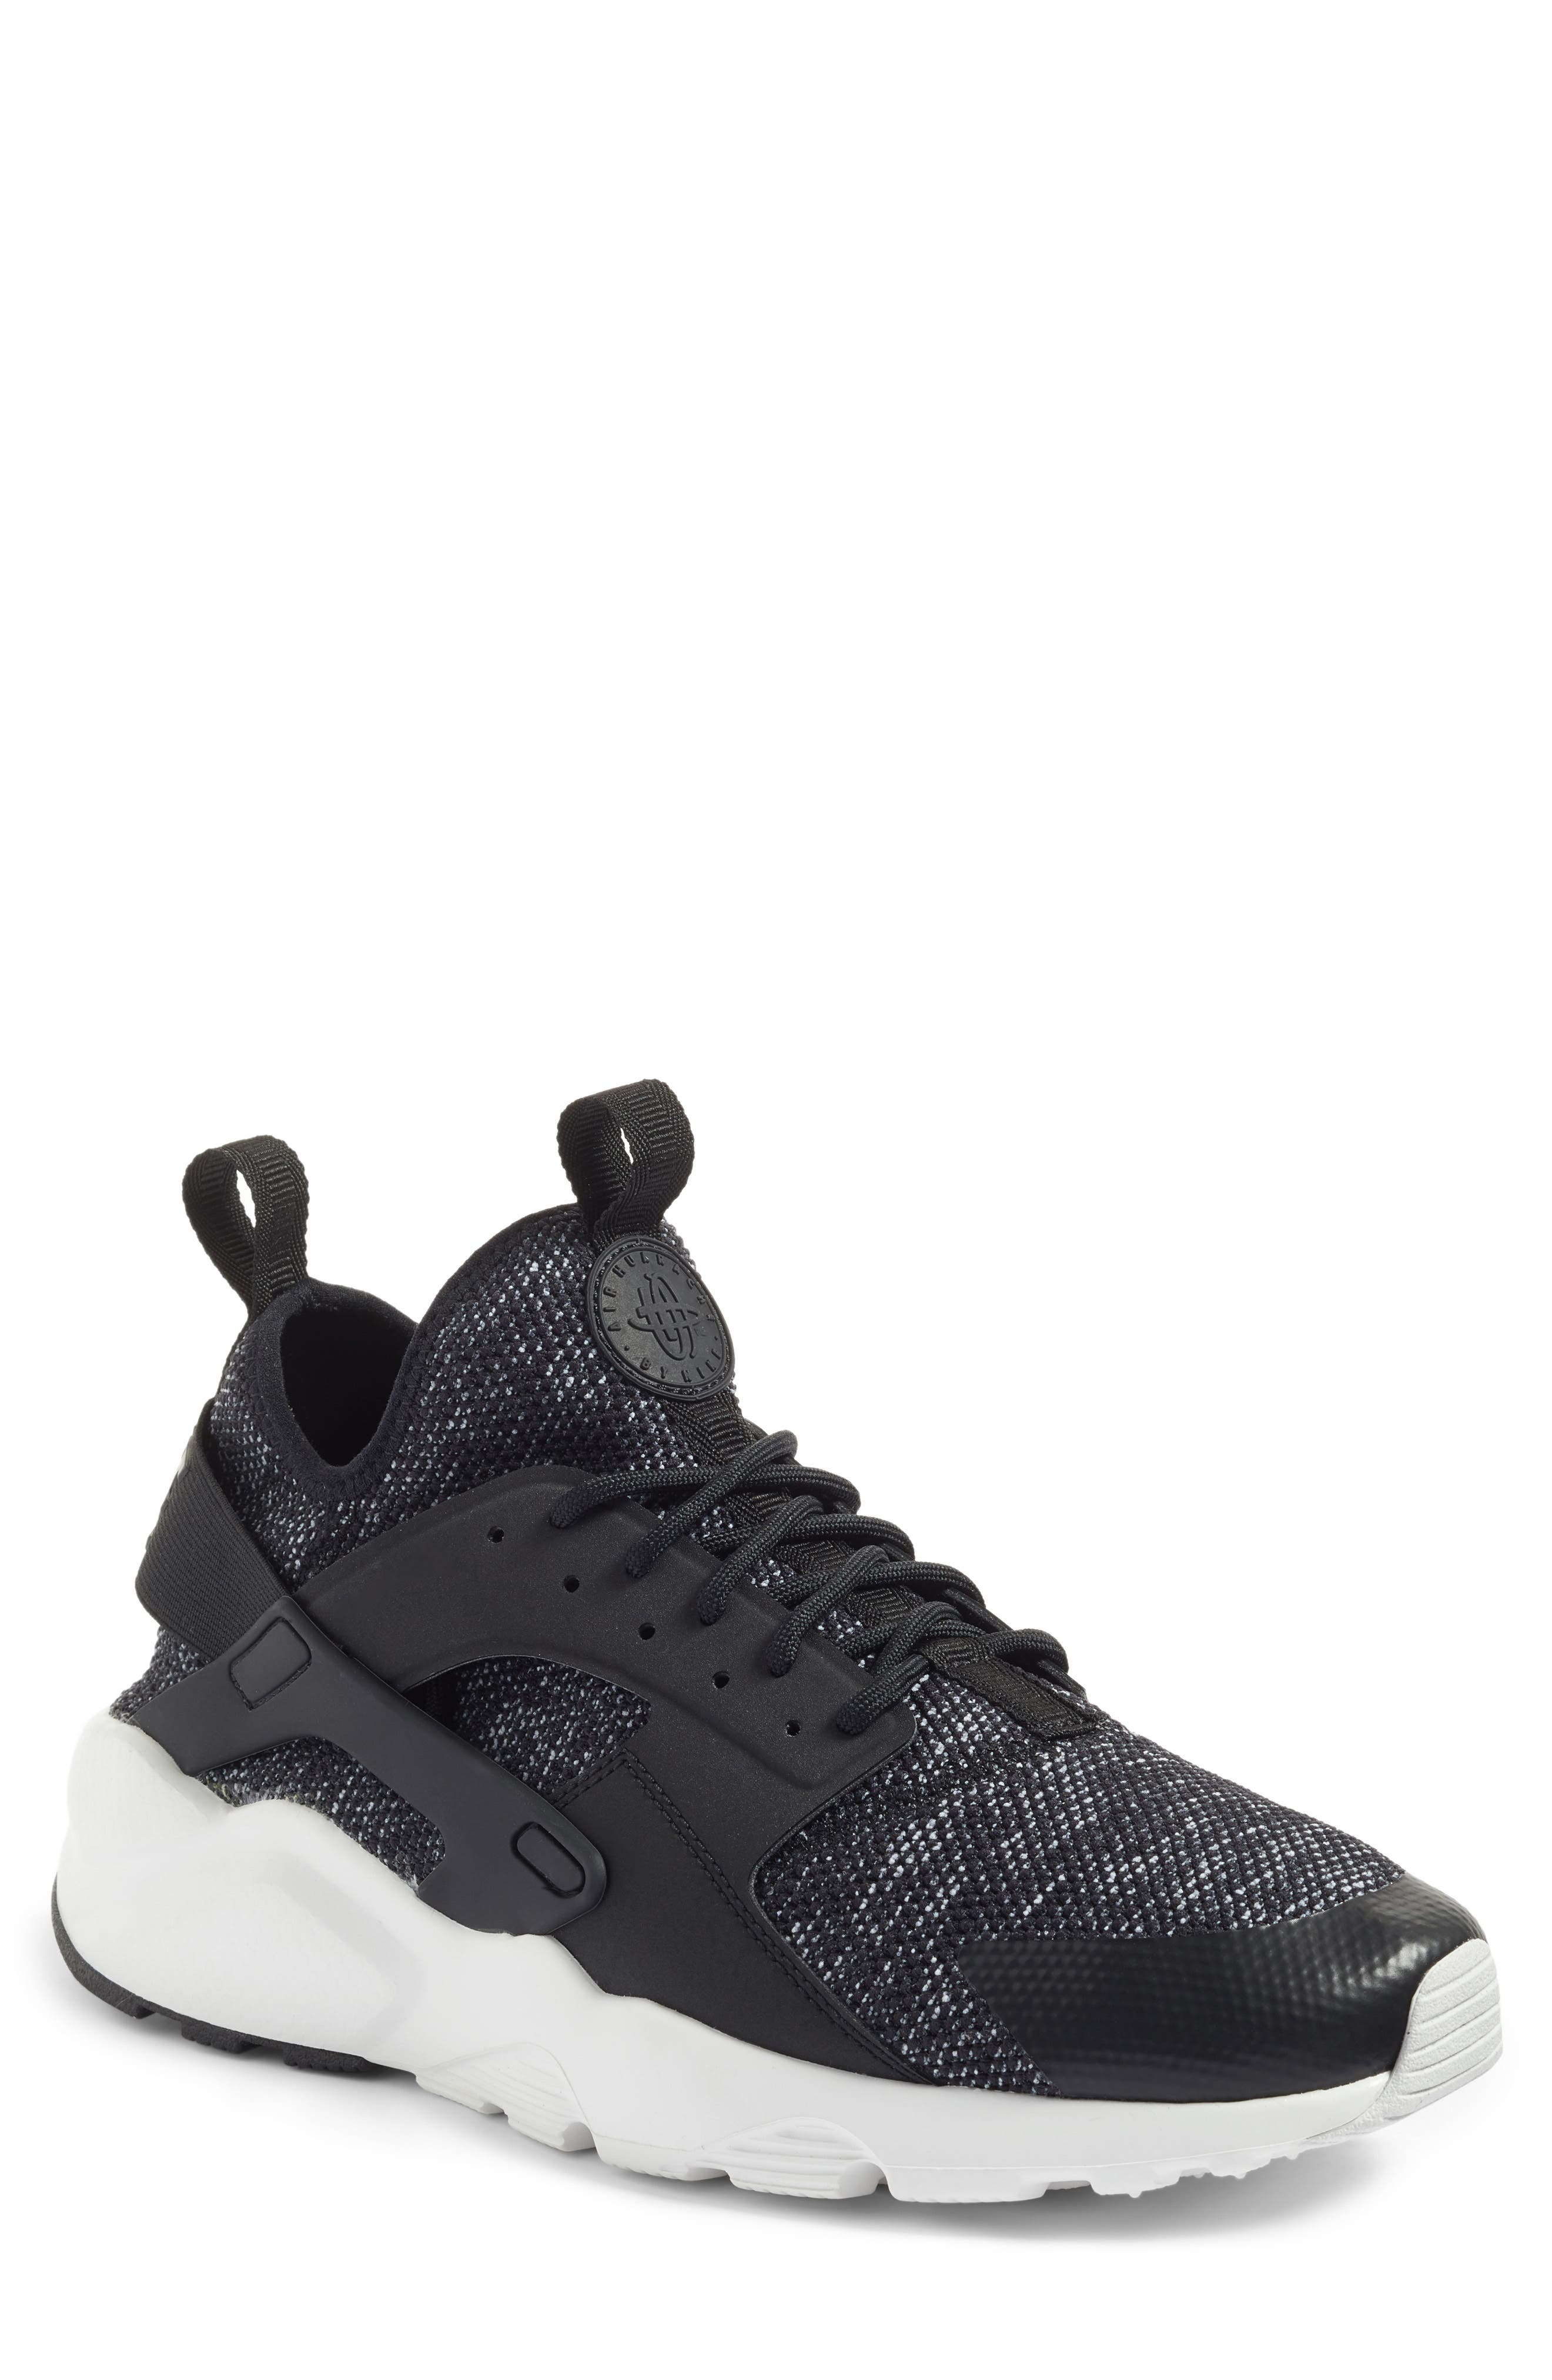 Nike Air Huarache Ultra Breathe Sneaker (Men)